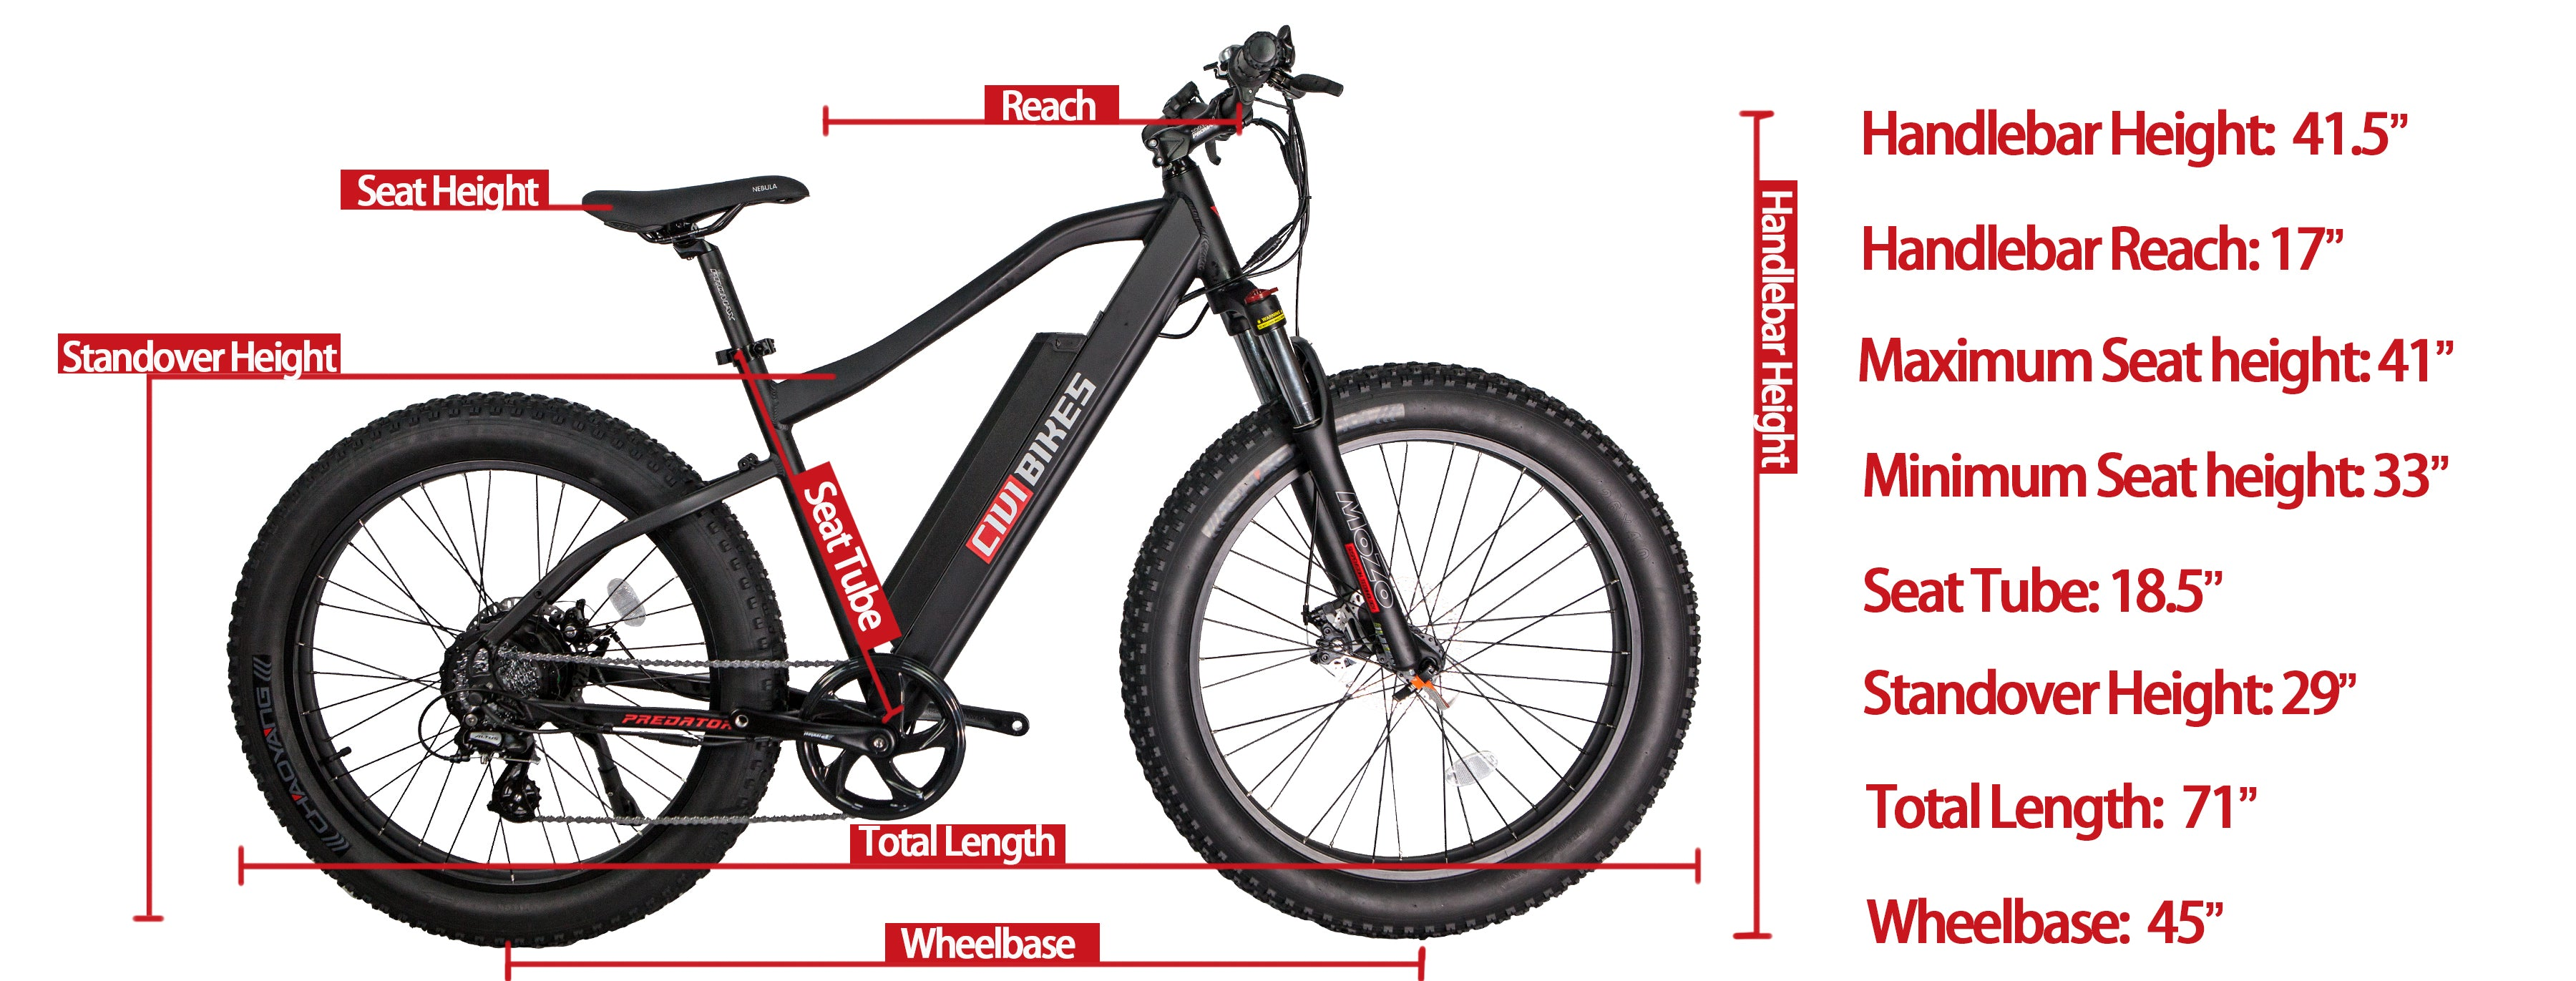 predator bike size chart diagram